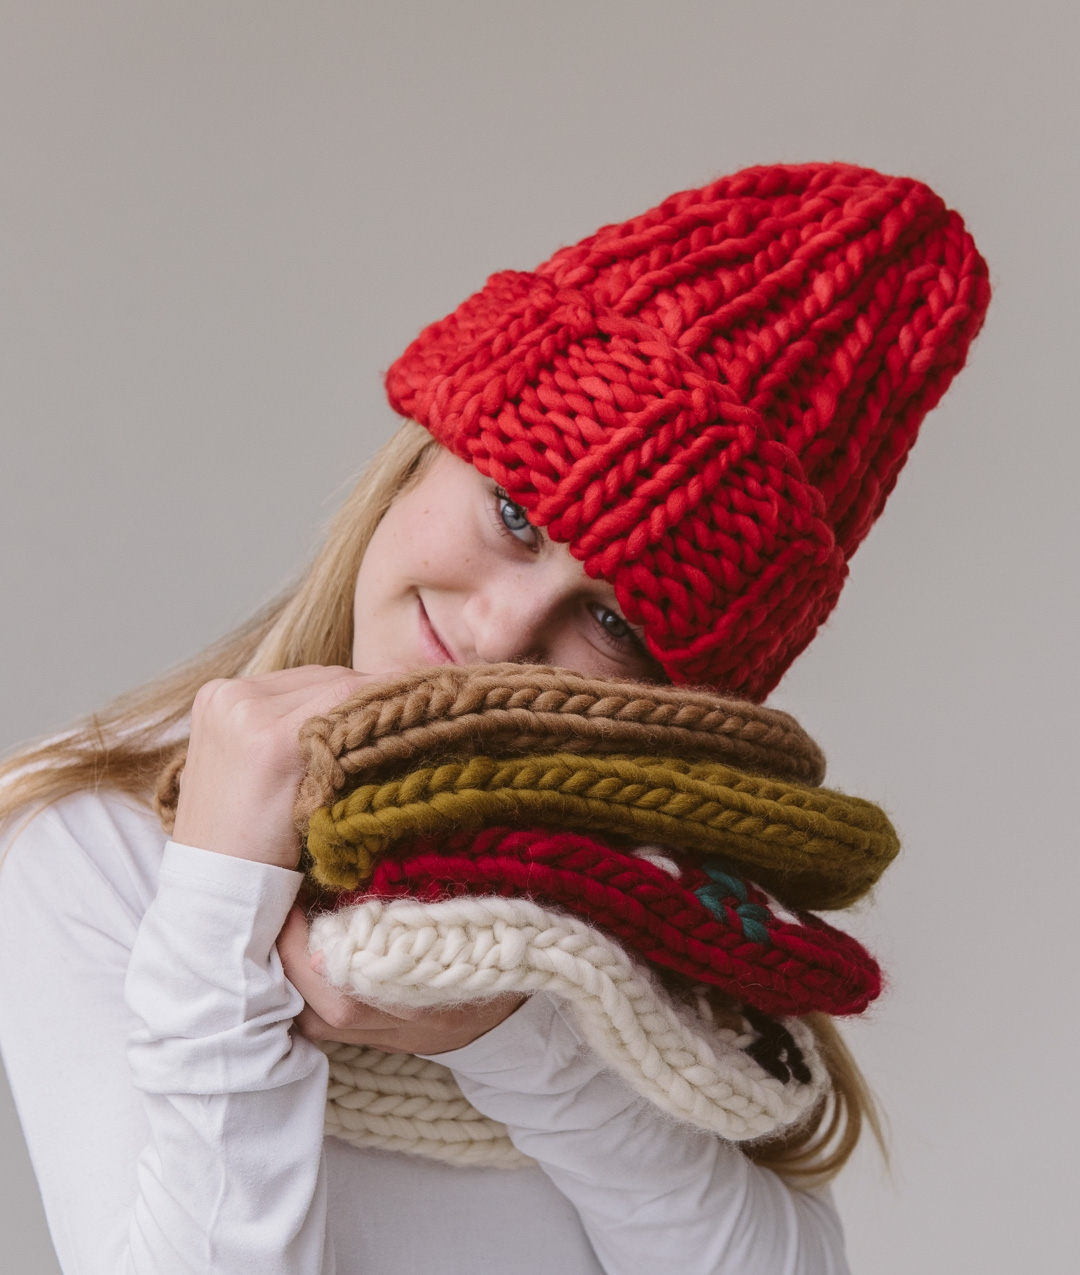 Hats and Beanies - Wool - Ribb Beanie - For Kids - 1